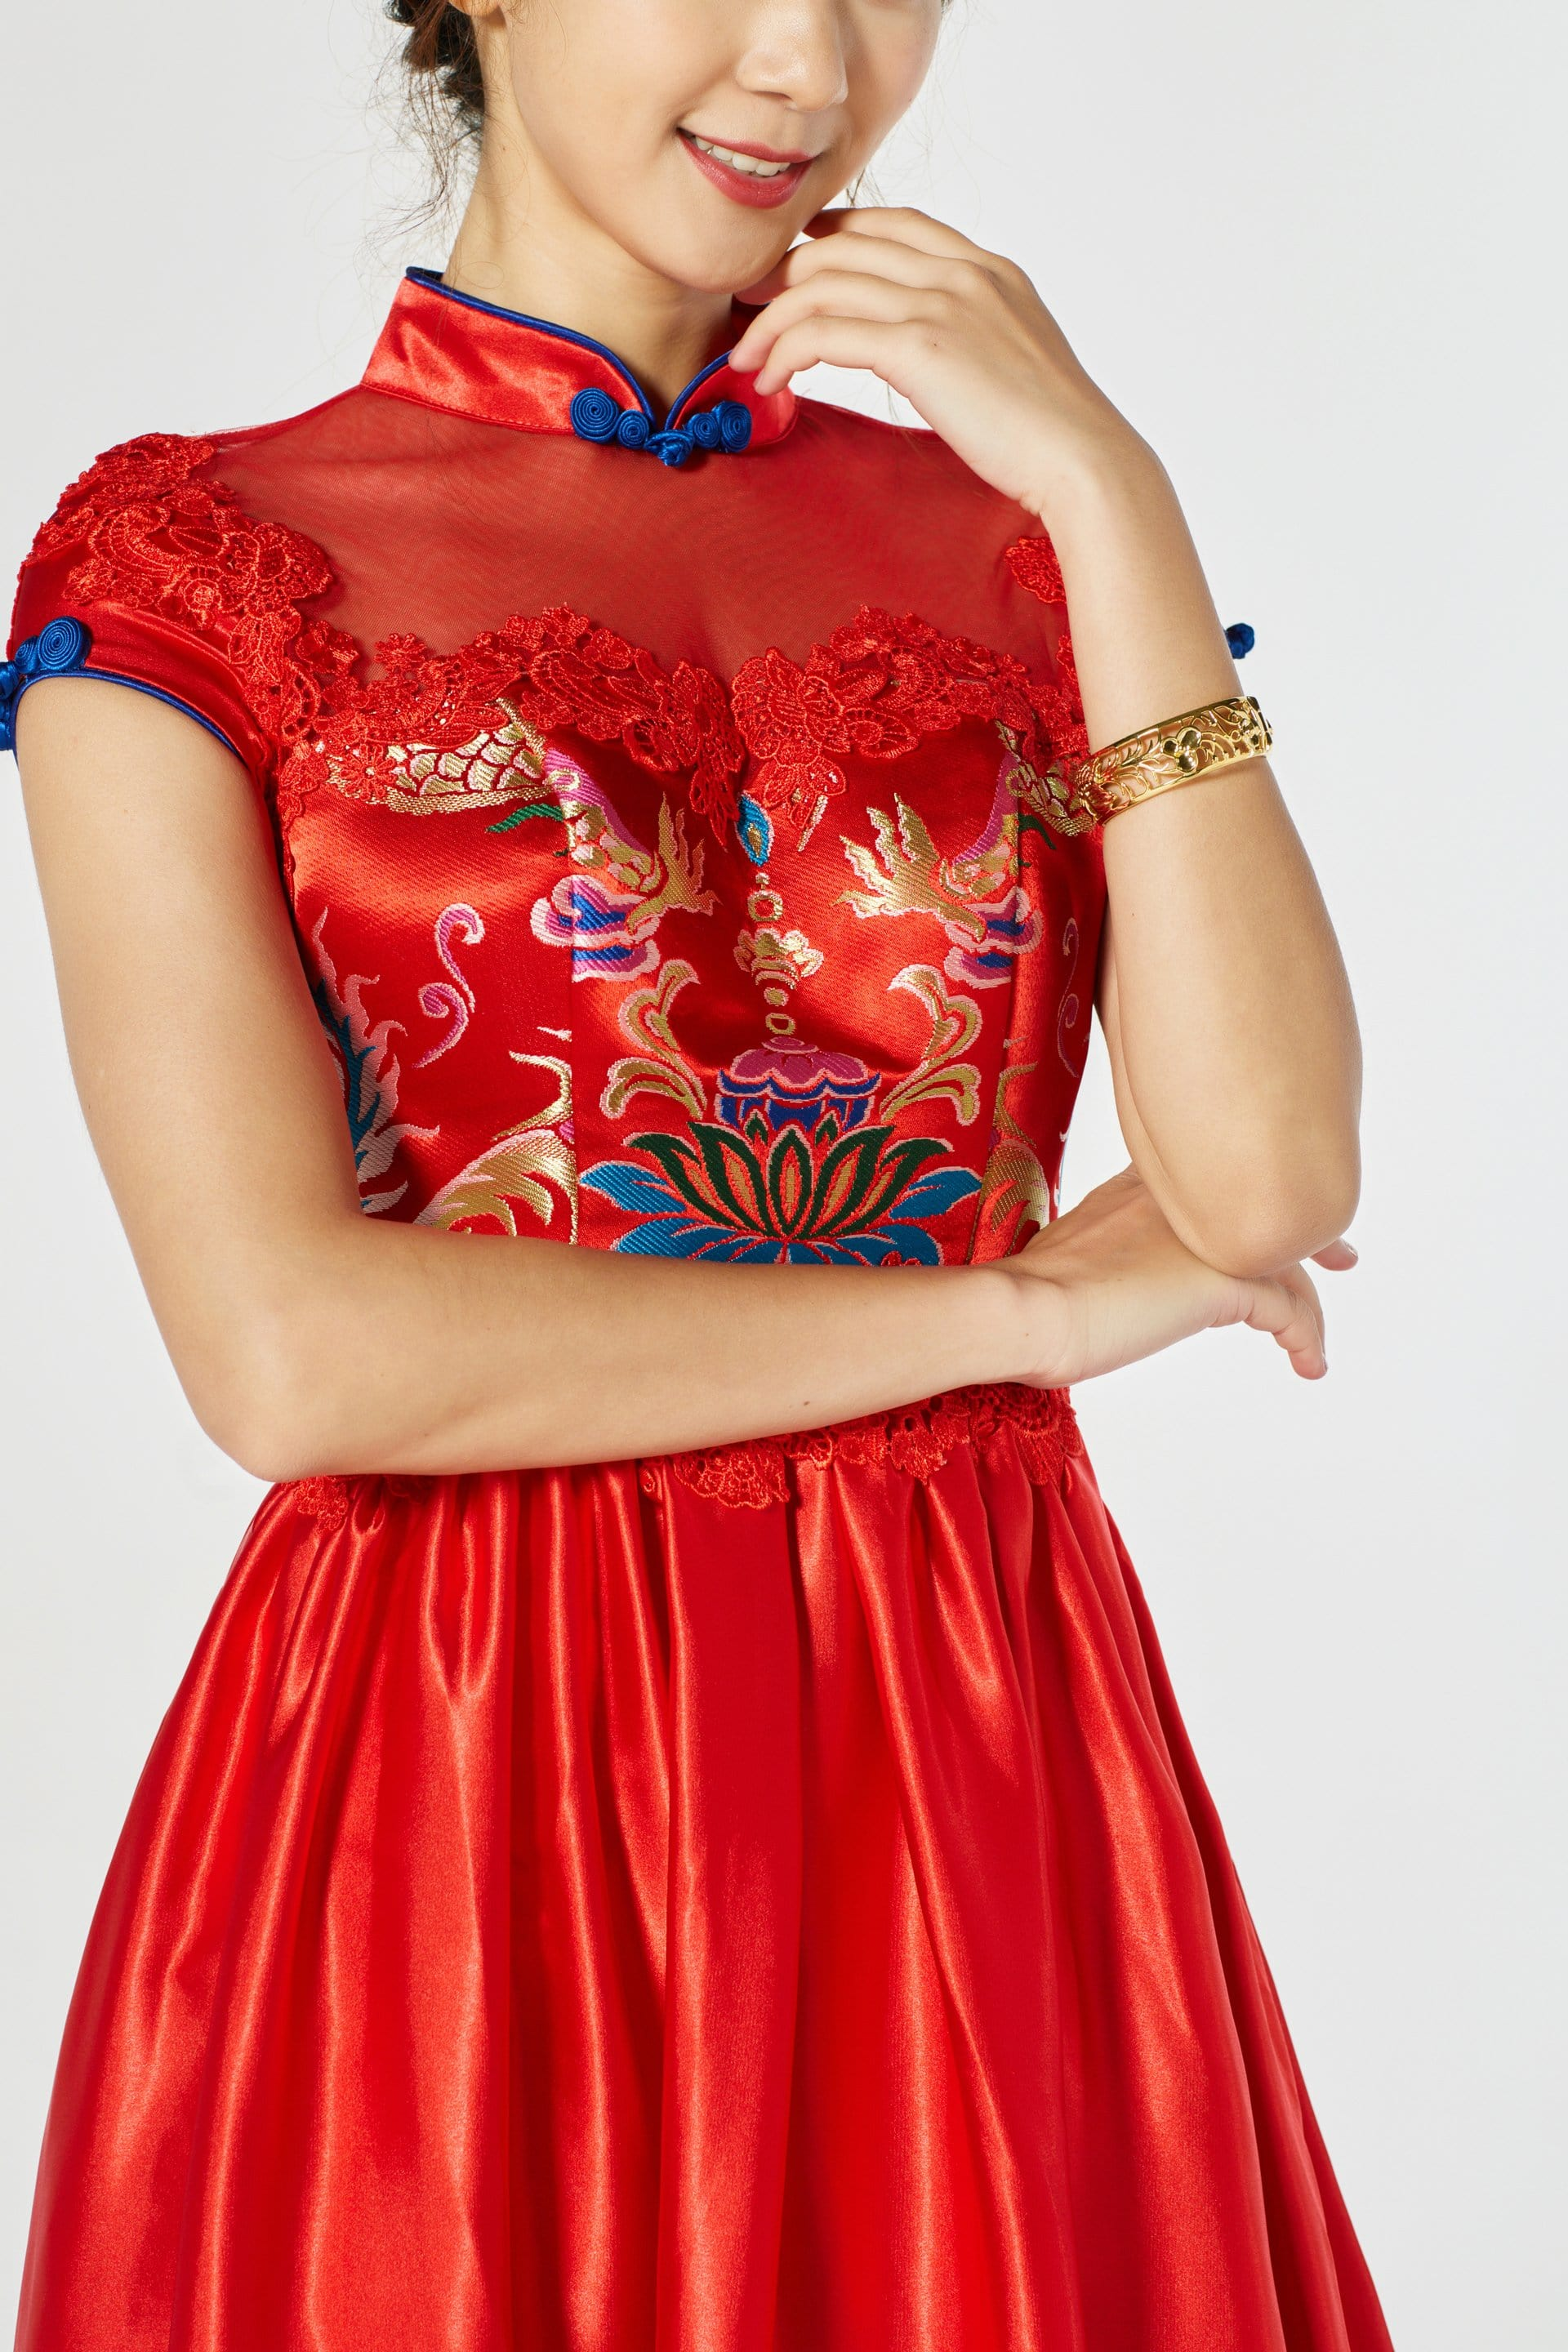 Adeline Bespoke Dress - Cheongsam - East Meets Dress